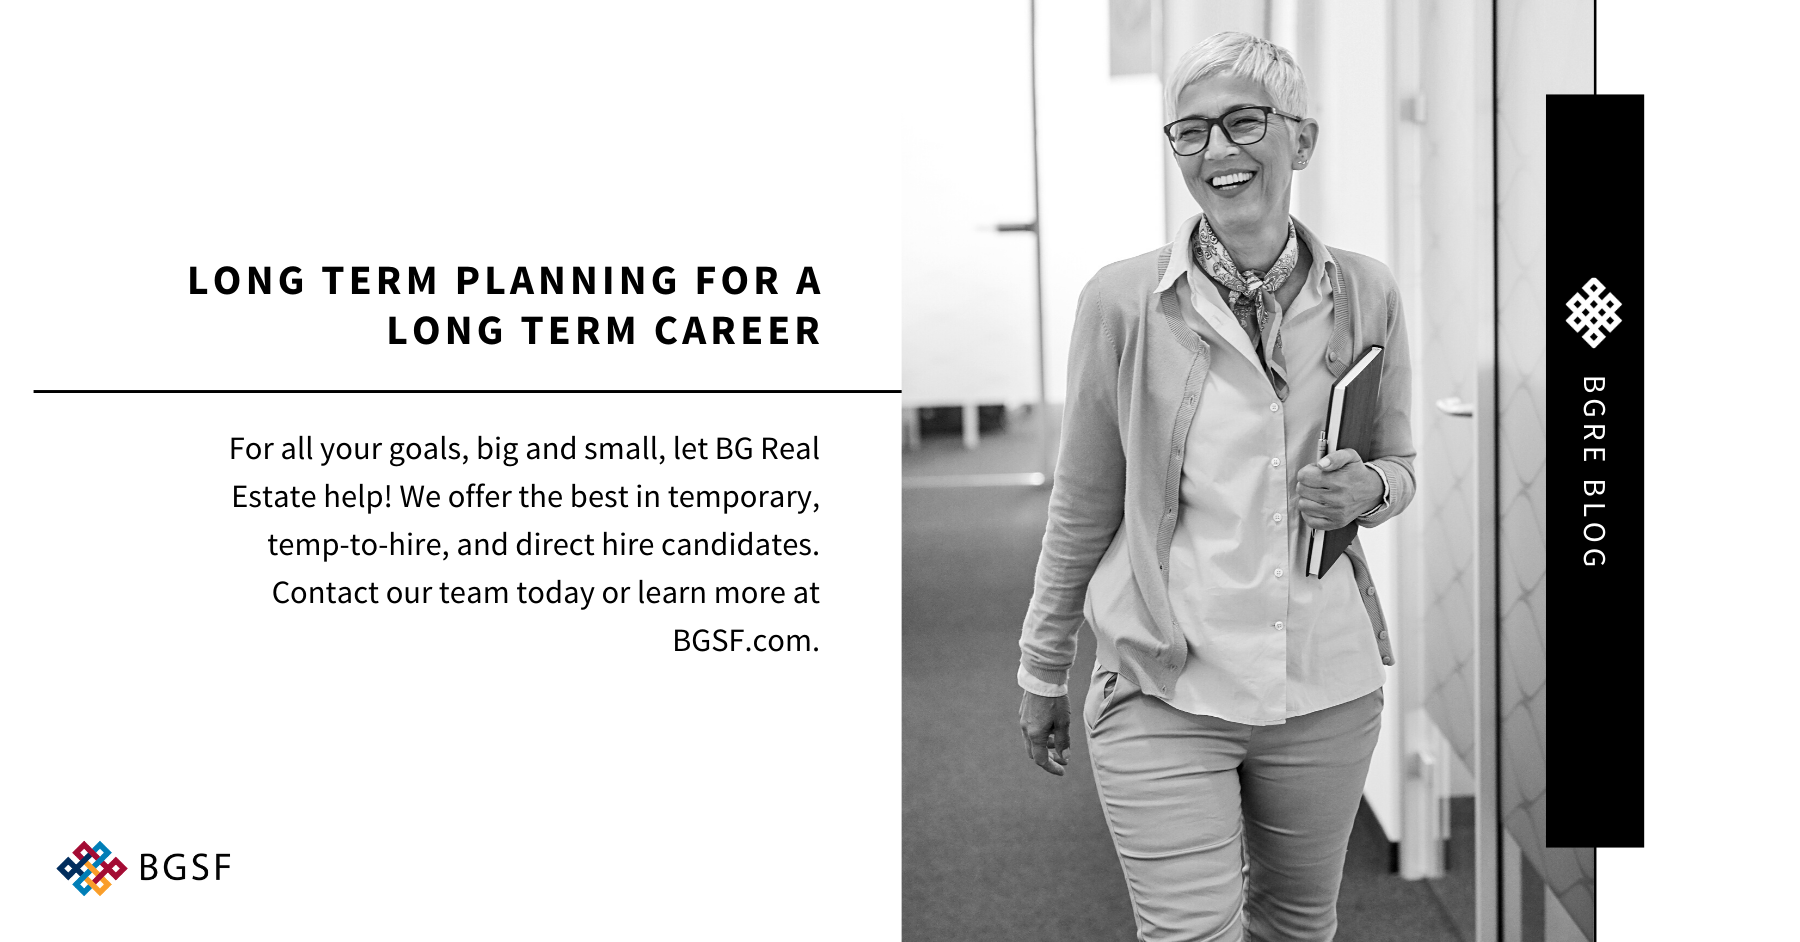 Long Term Planning for a Long Term Career